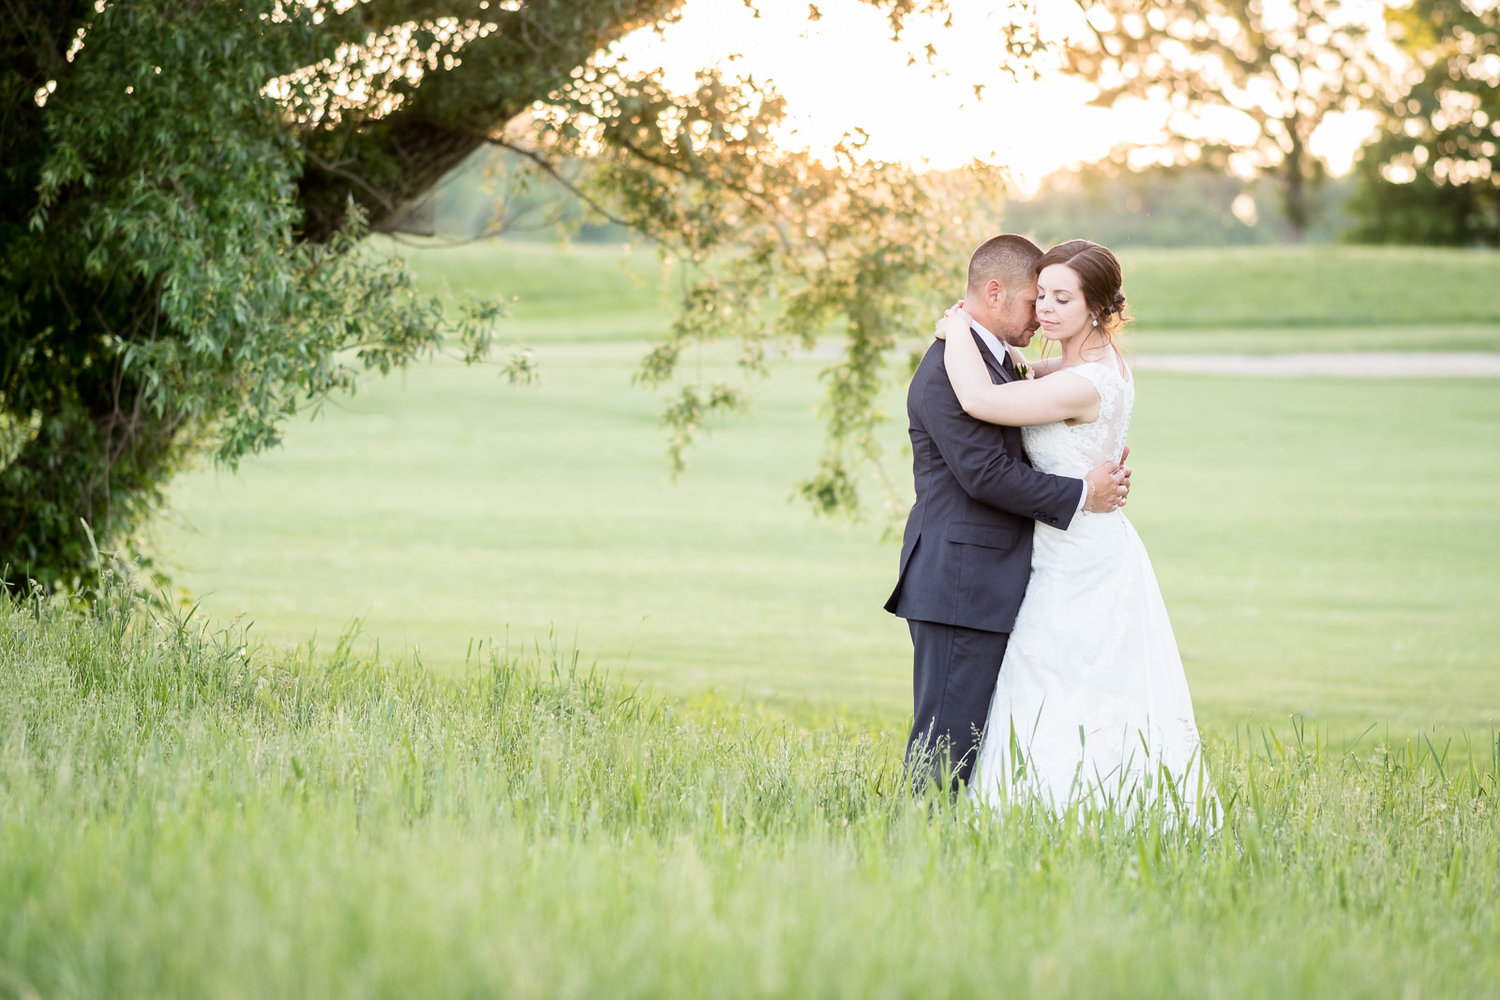 Ravenwood Golf Club Wedding - Rochester, NY - Laura and Anthony ...